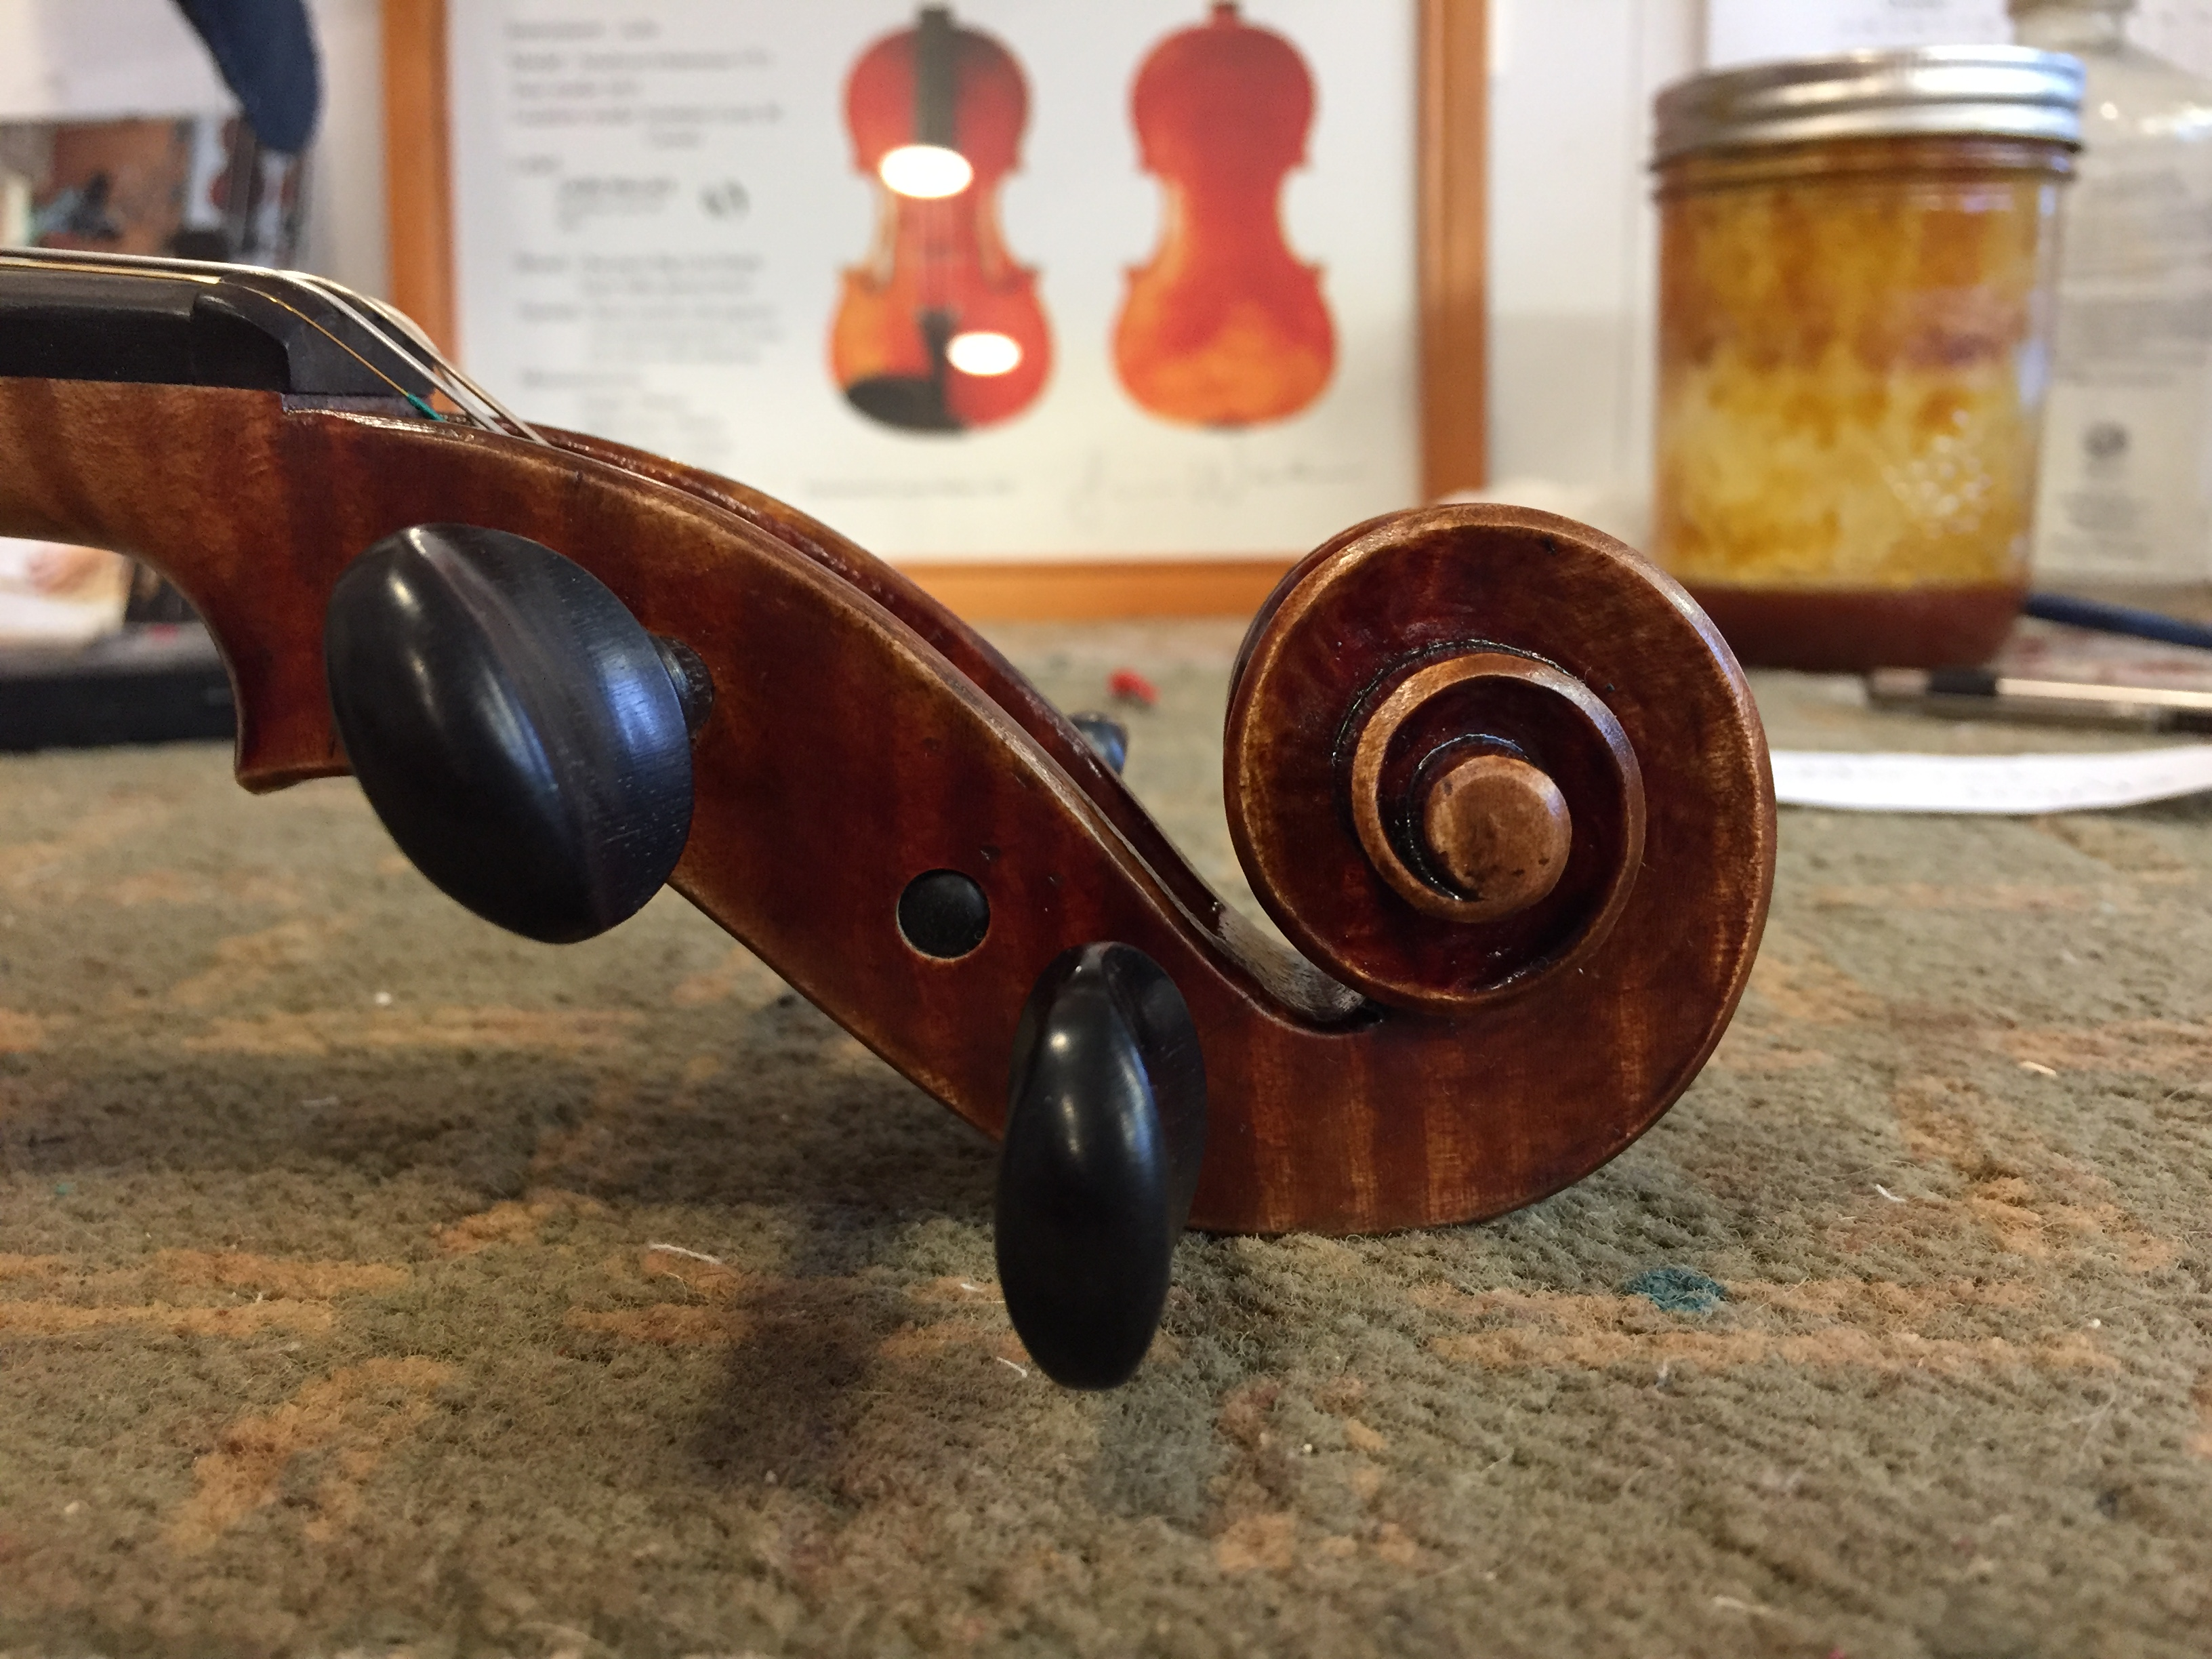 Laura Wallace violin scroll with certificate in background.